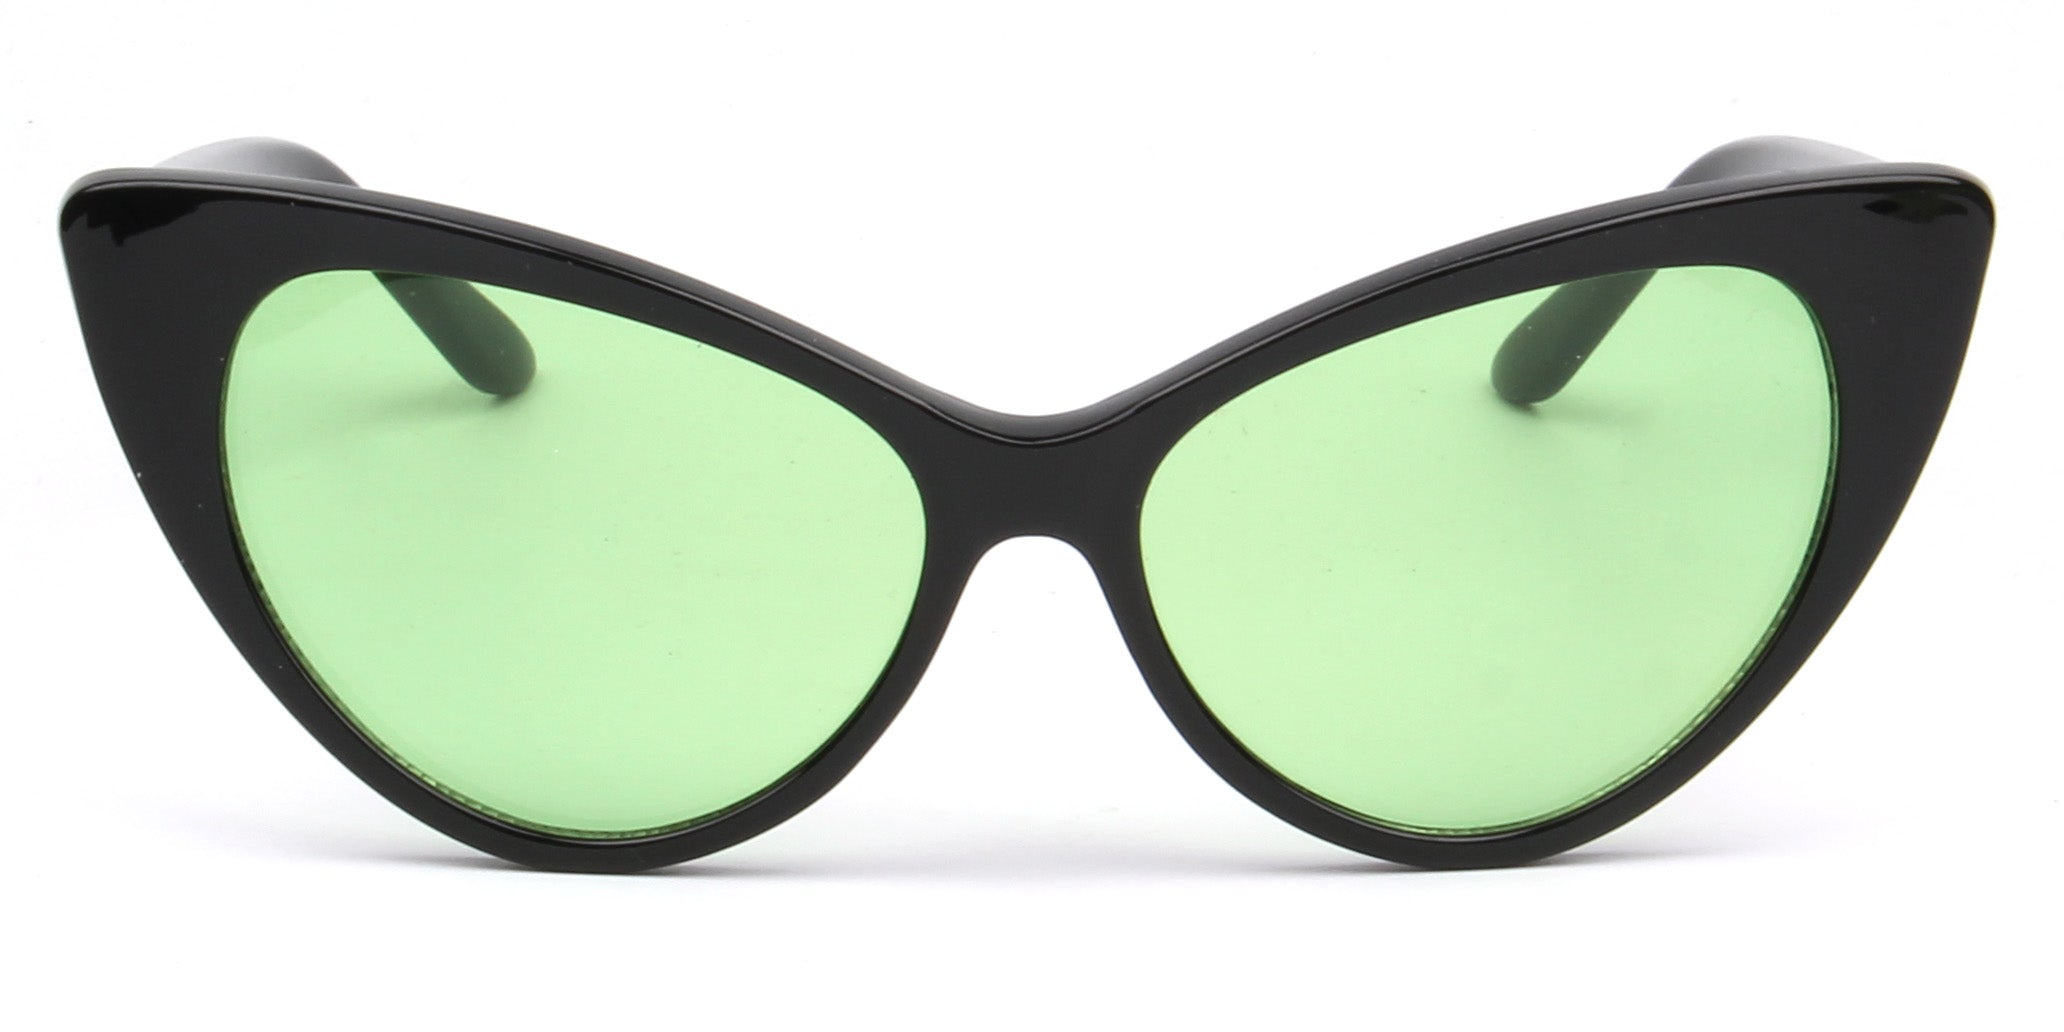 Akcessoryz-women extreme cat eye sunglasses with green lens and black frame